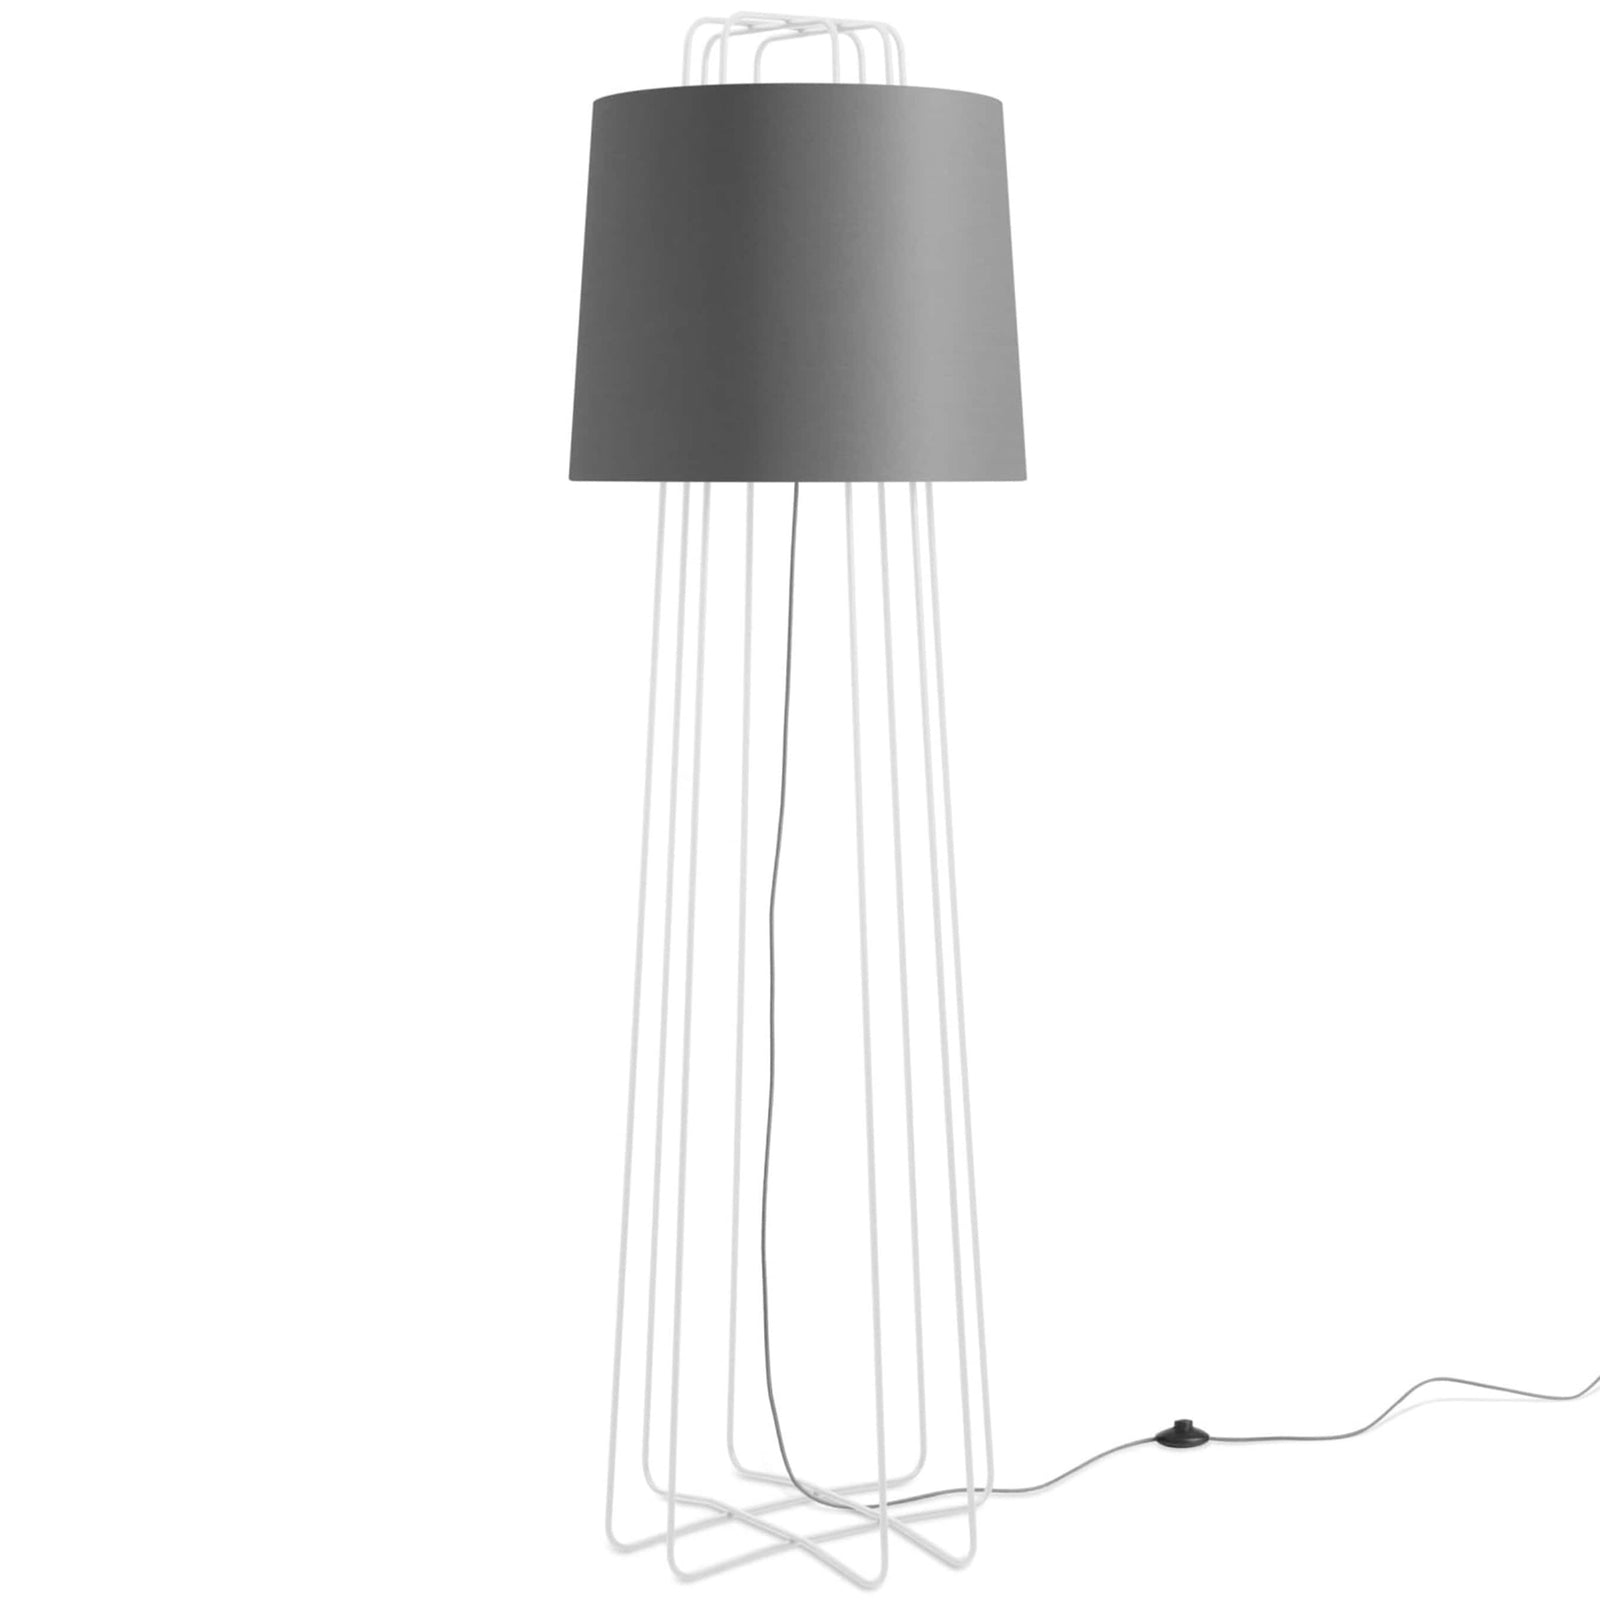 Blu Dot Lighting Grey/White Perimeter Floor Lamp